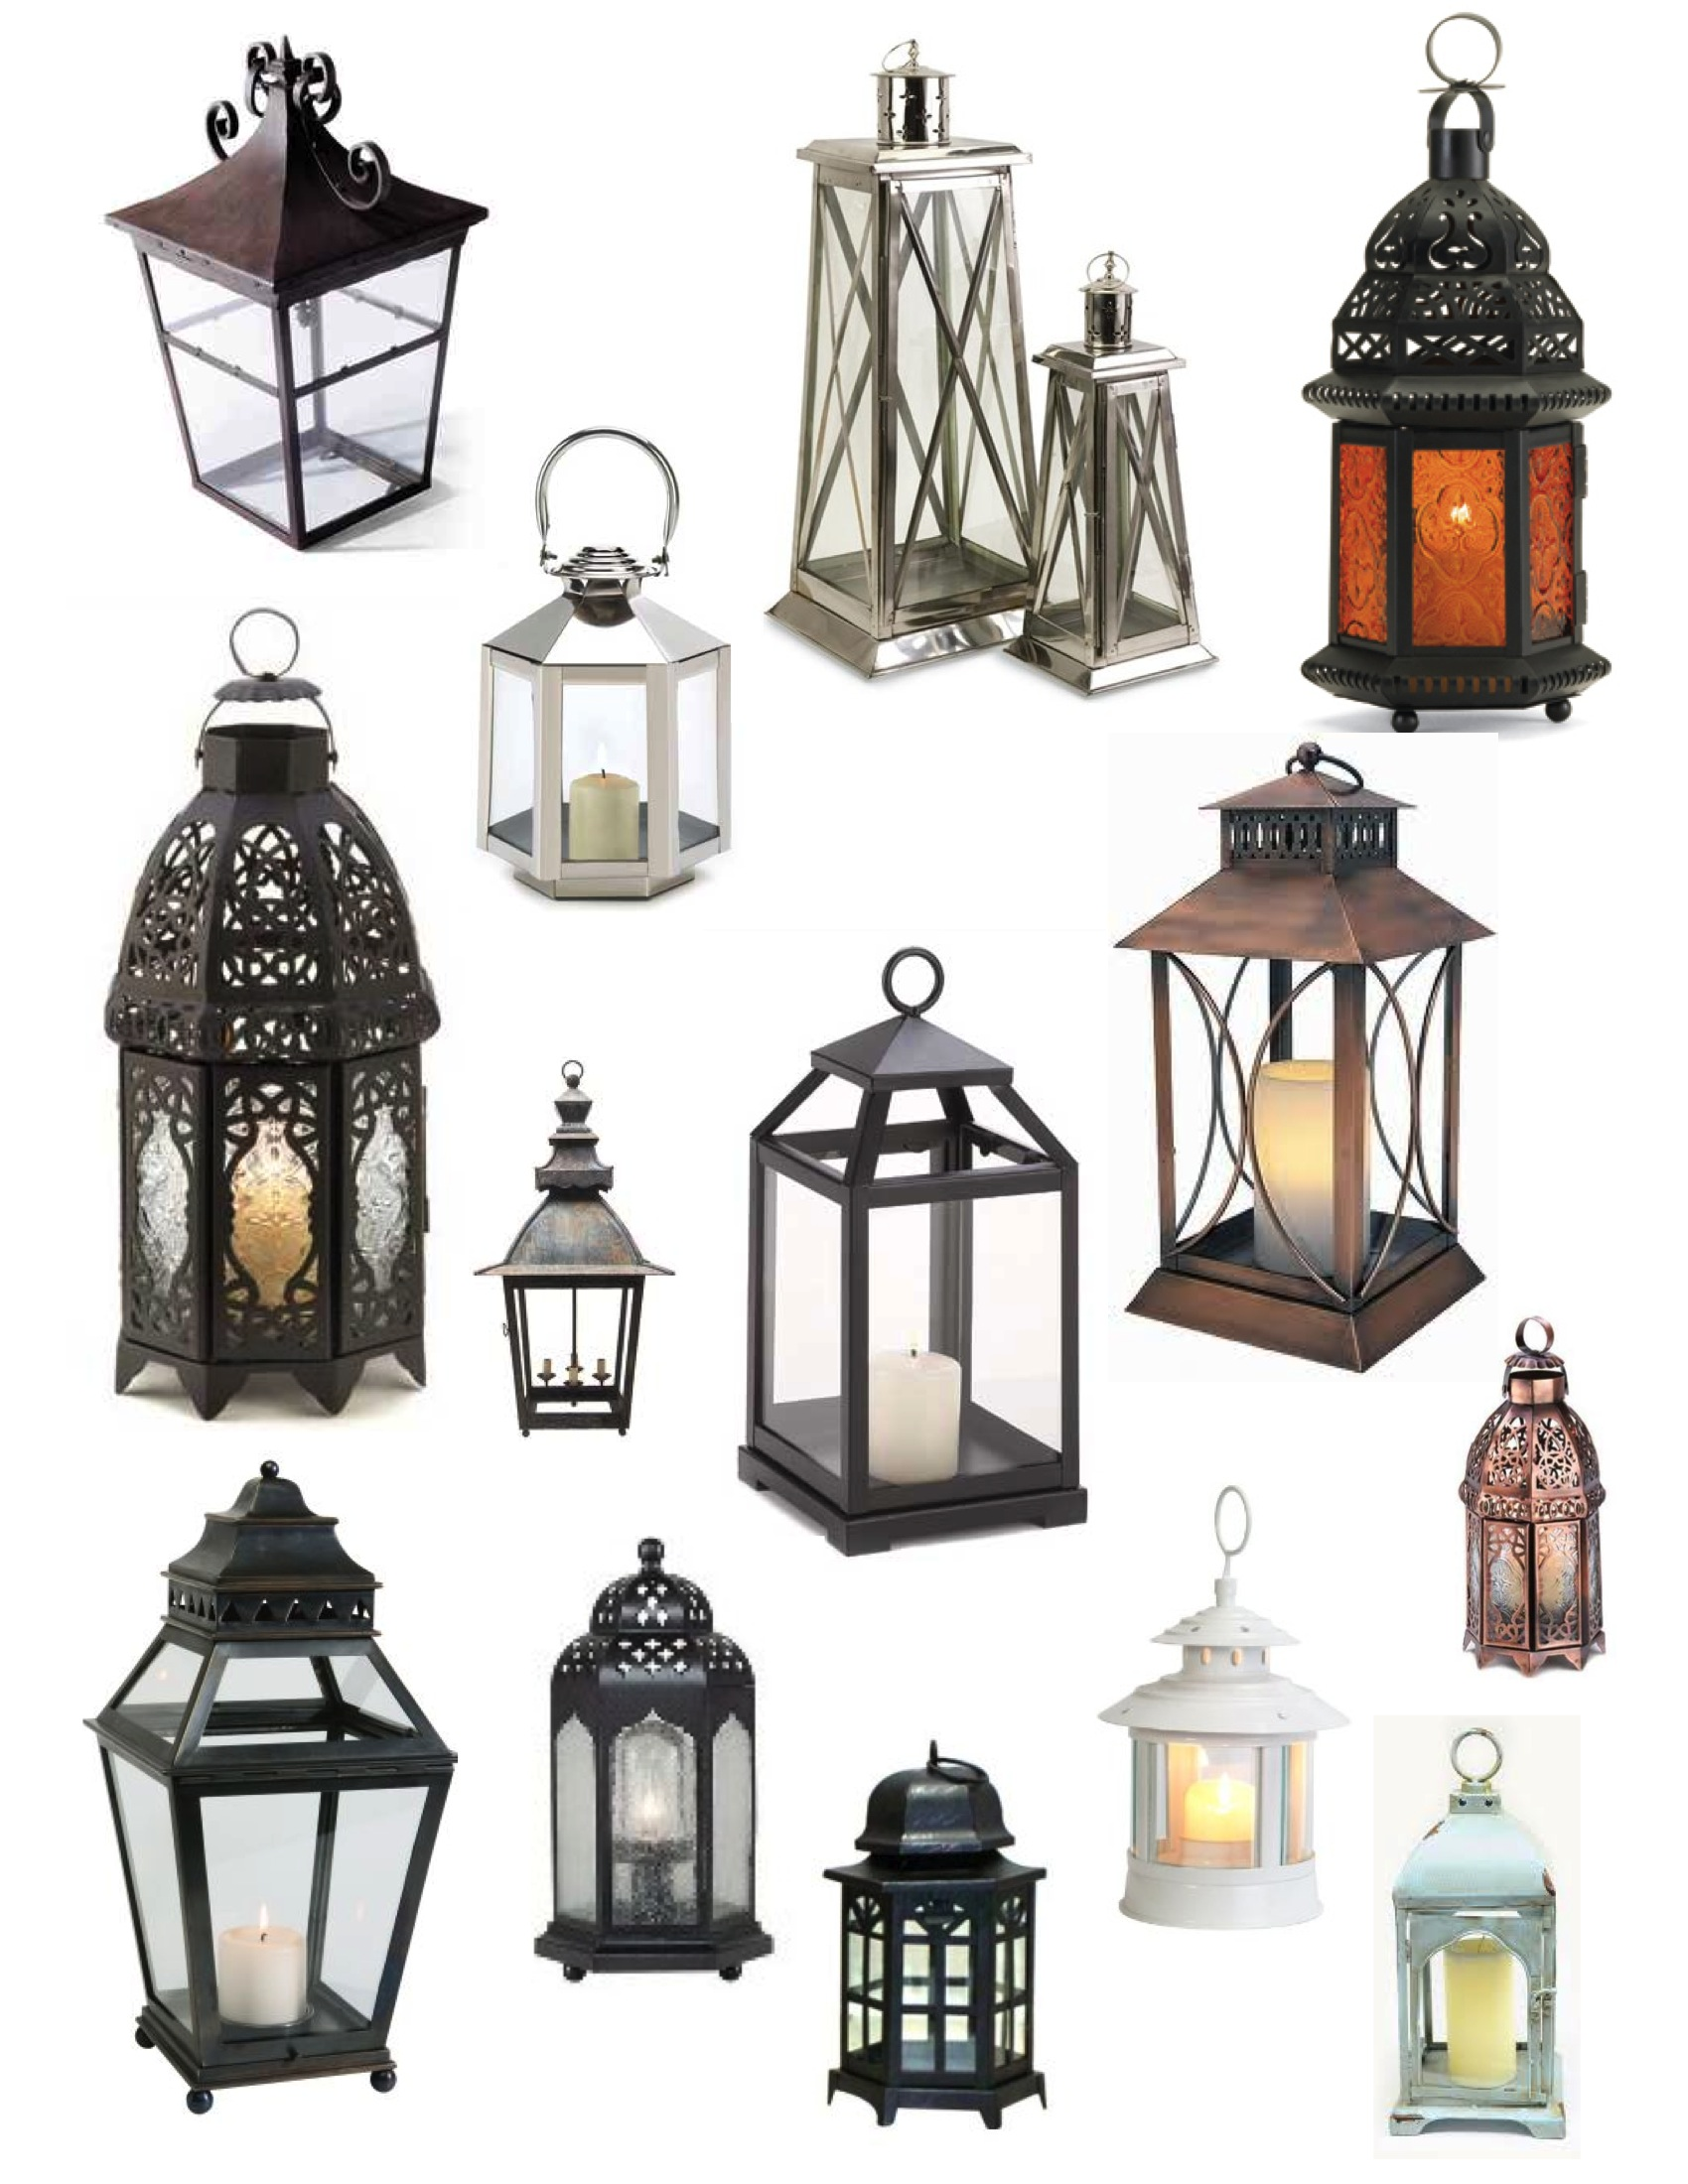 The Illumination of Lantern Lighting House Appeal